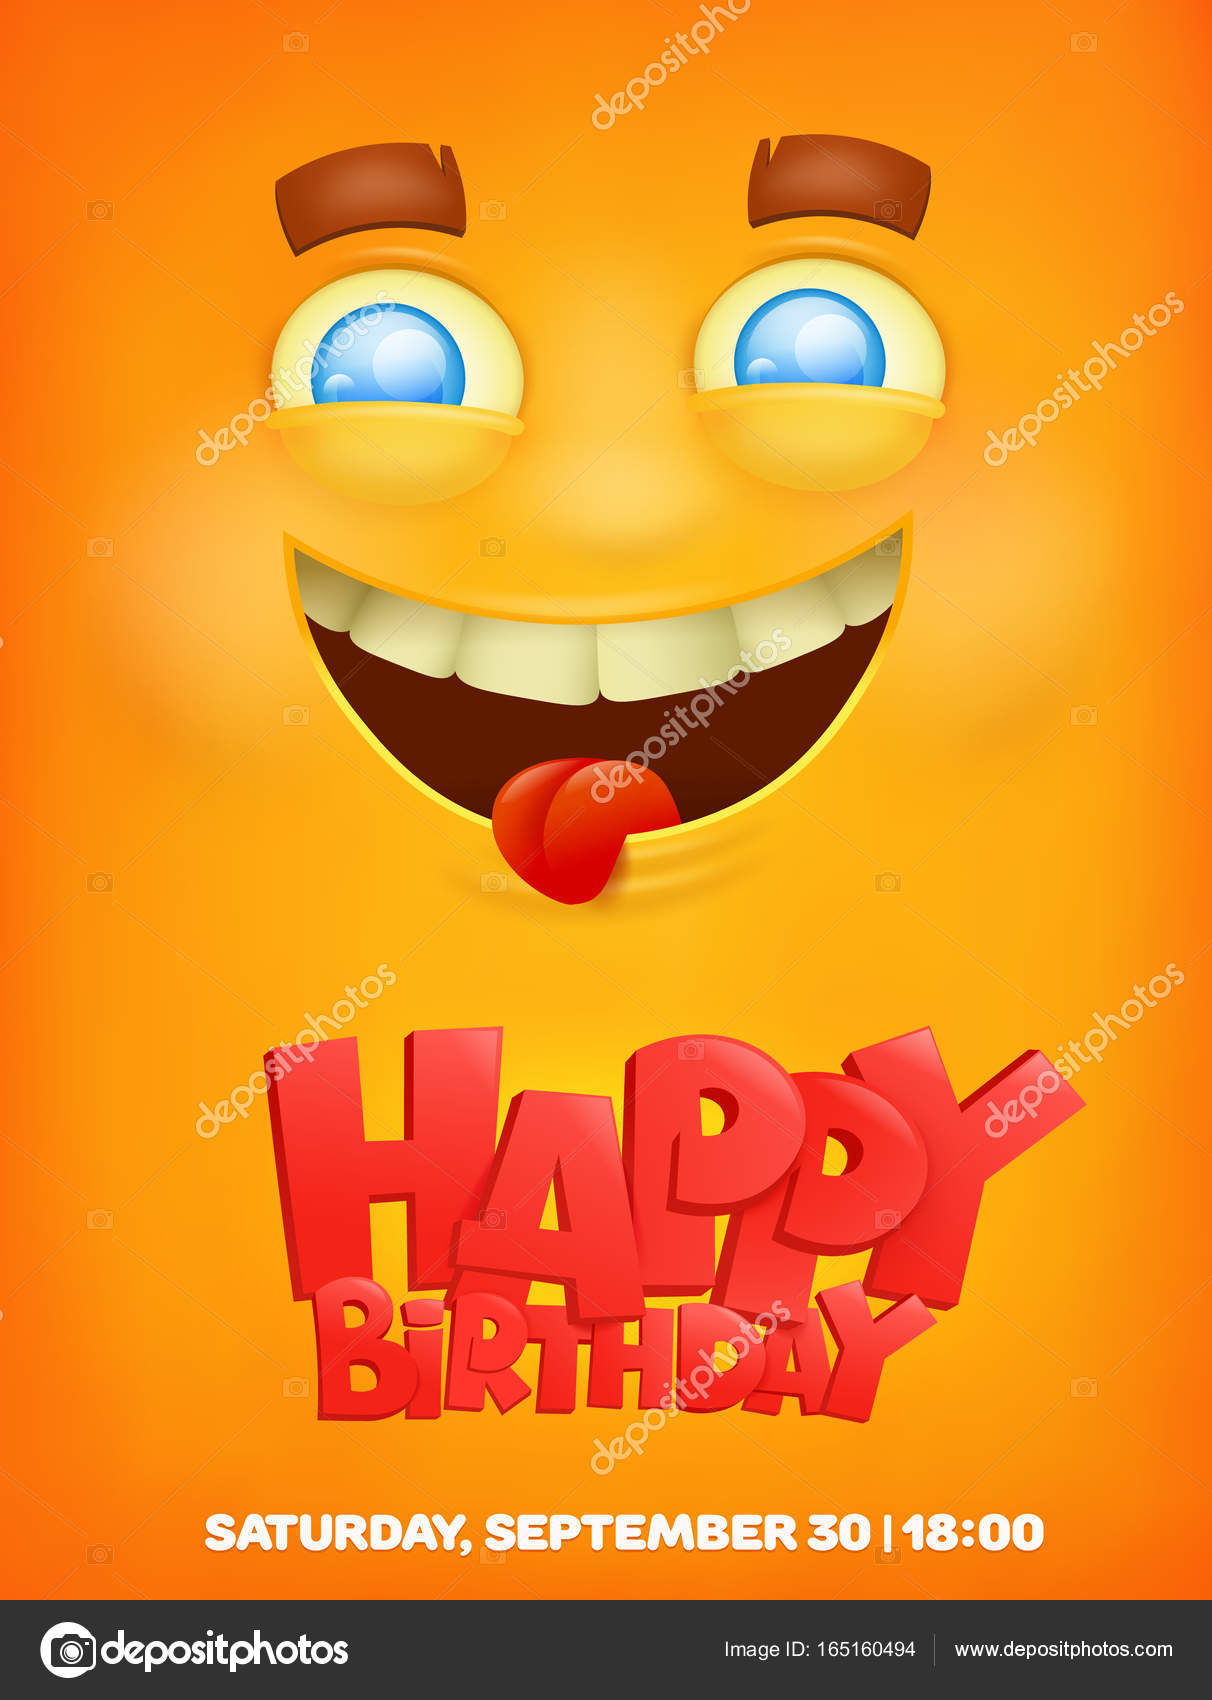 Happy Birthday Greeting Card With Emoji Smile Face Stock Vector